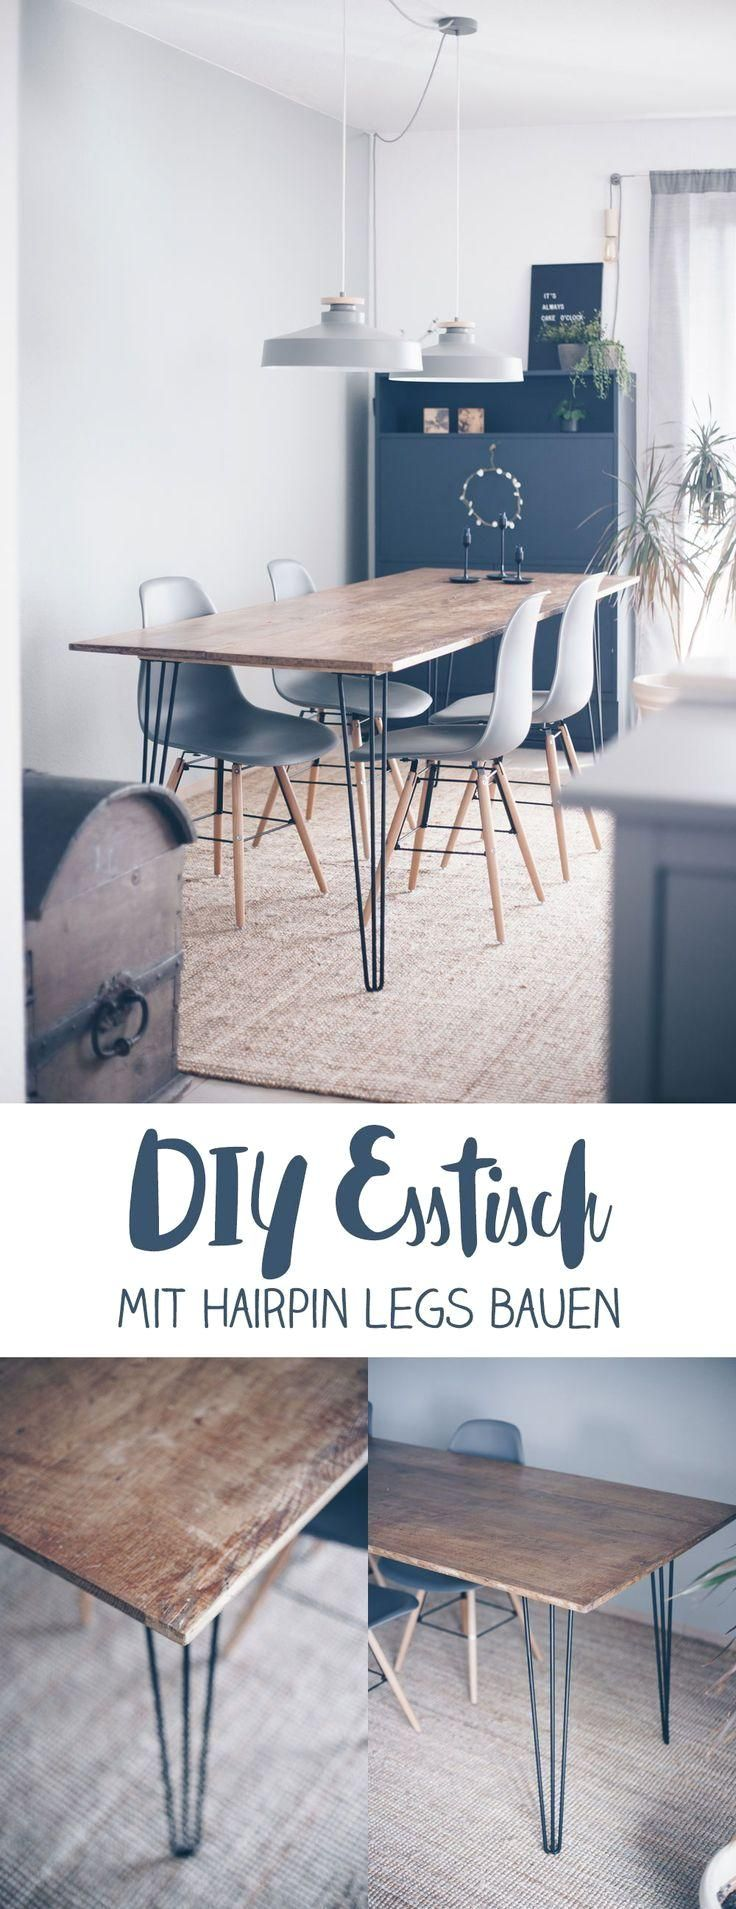 Make yourself a DIY dining table with Hairpin Legs - build your own furniture - DIY idea #diymöbel